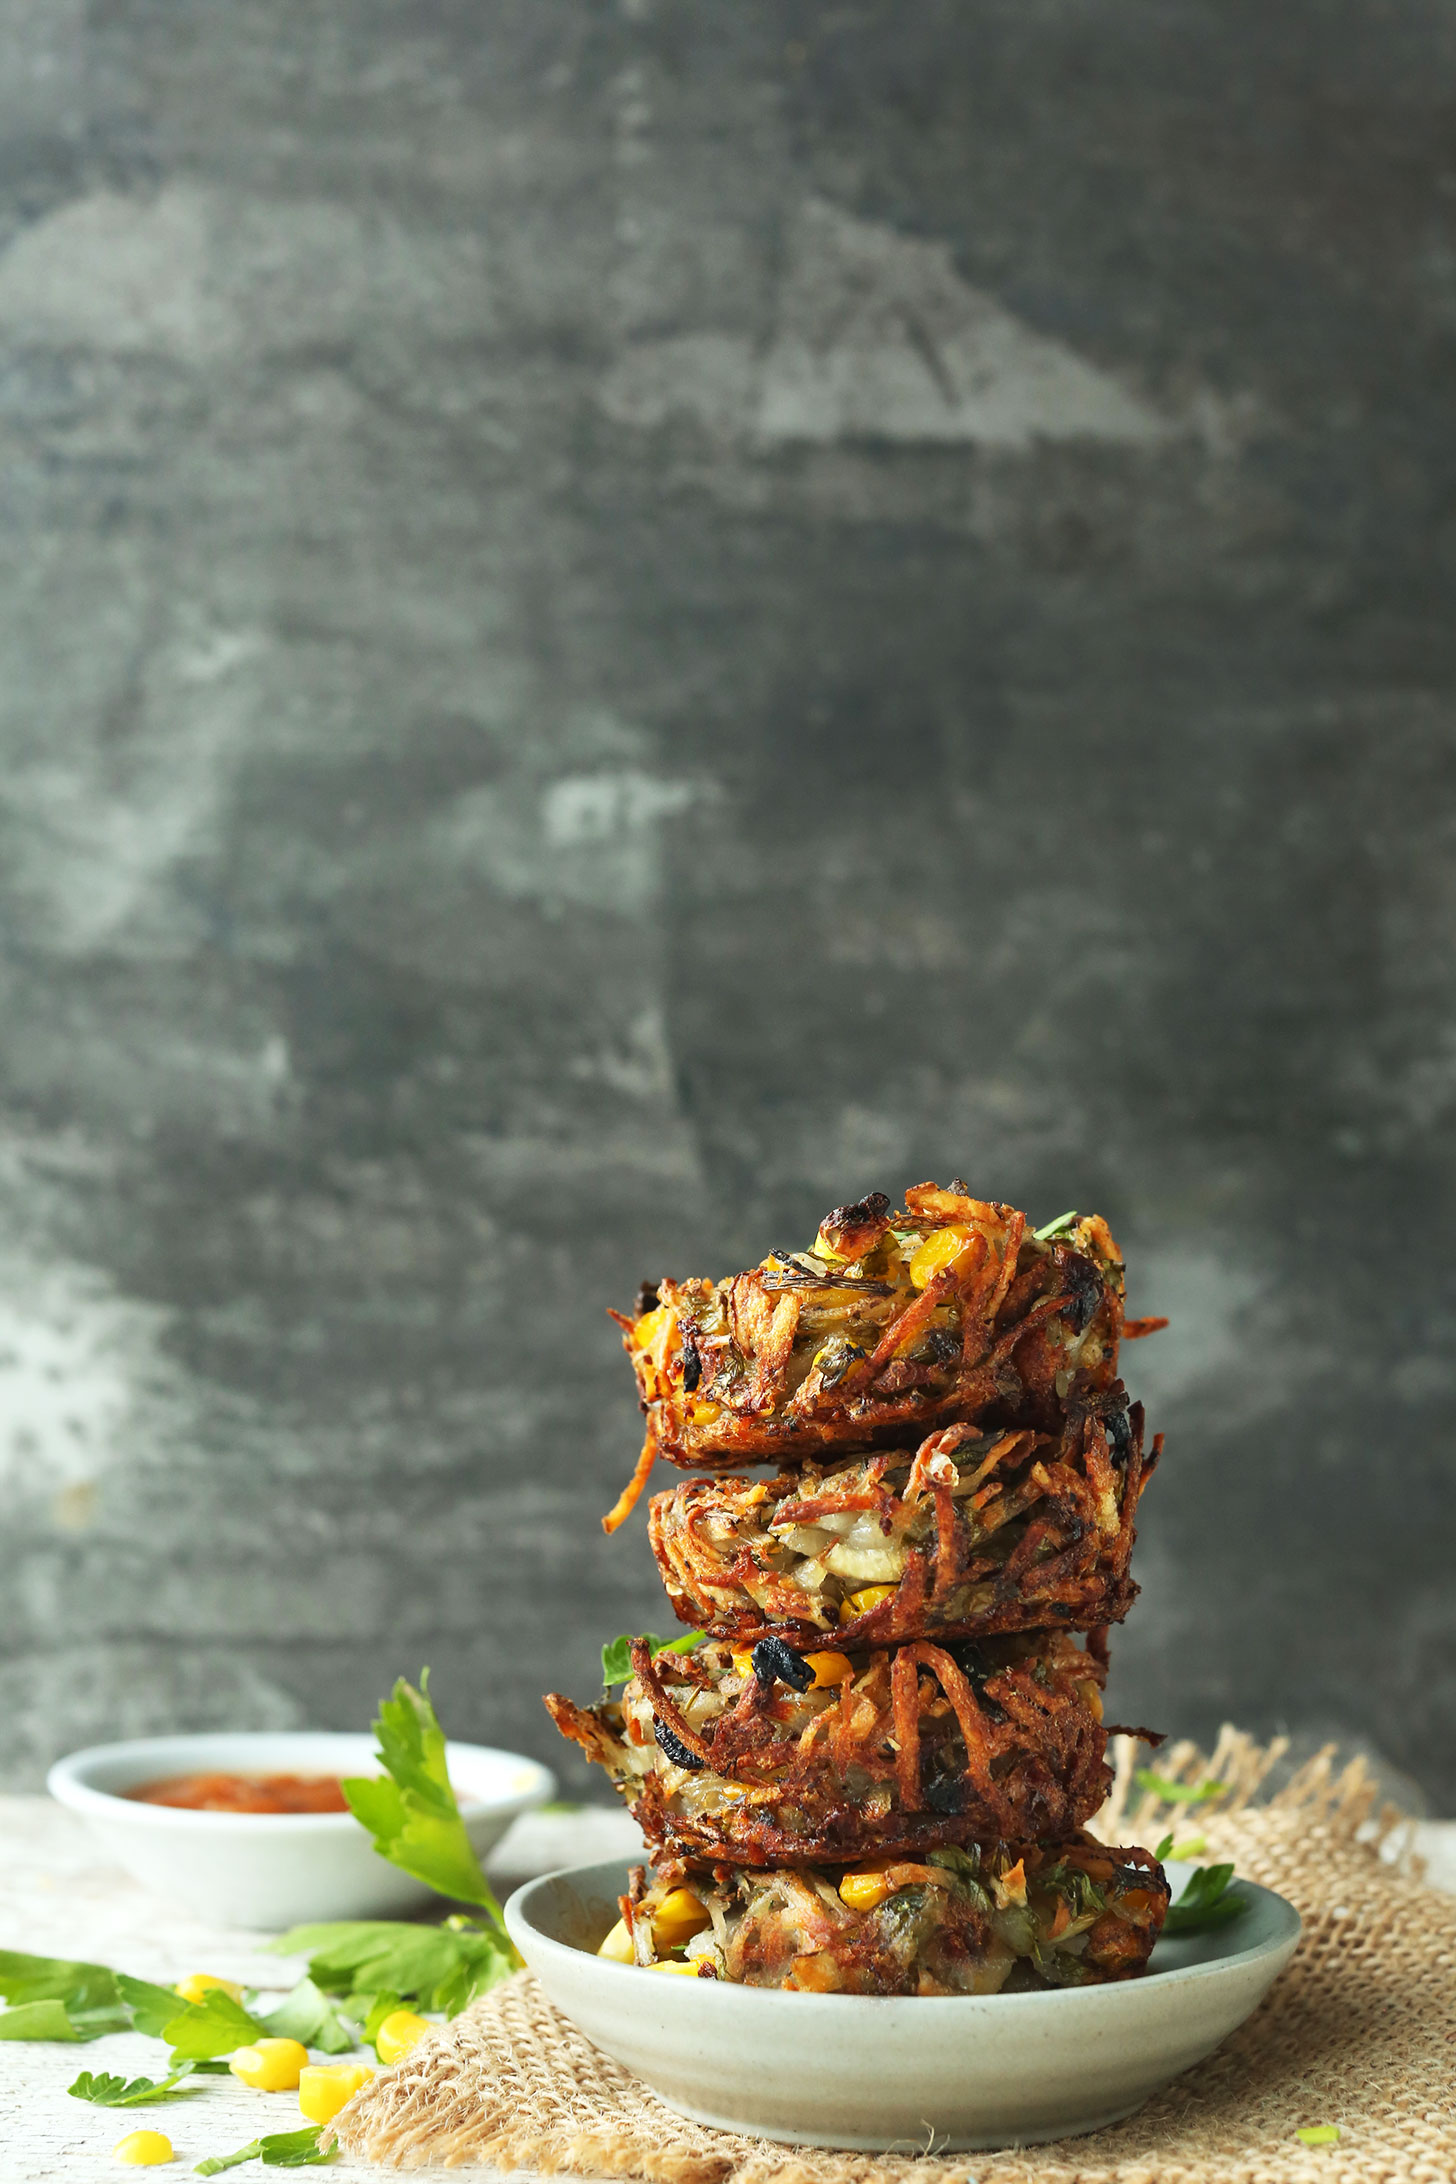 7 Ingredient CRISPY HASH BROWN Haystacks with corn, parsley and shallot. Crispy, savory, SO perfect for breakfast or brunch! #vegan #glutenfree #breakfast #recipe #minimalistbaker